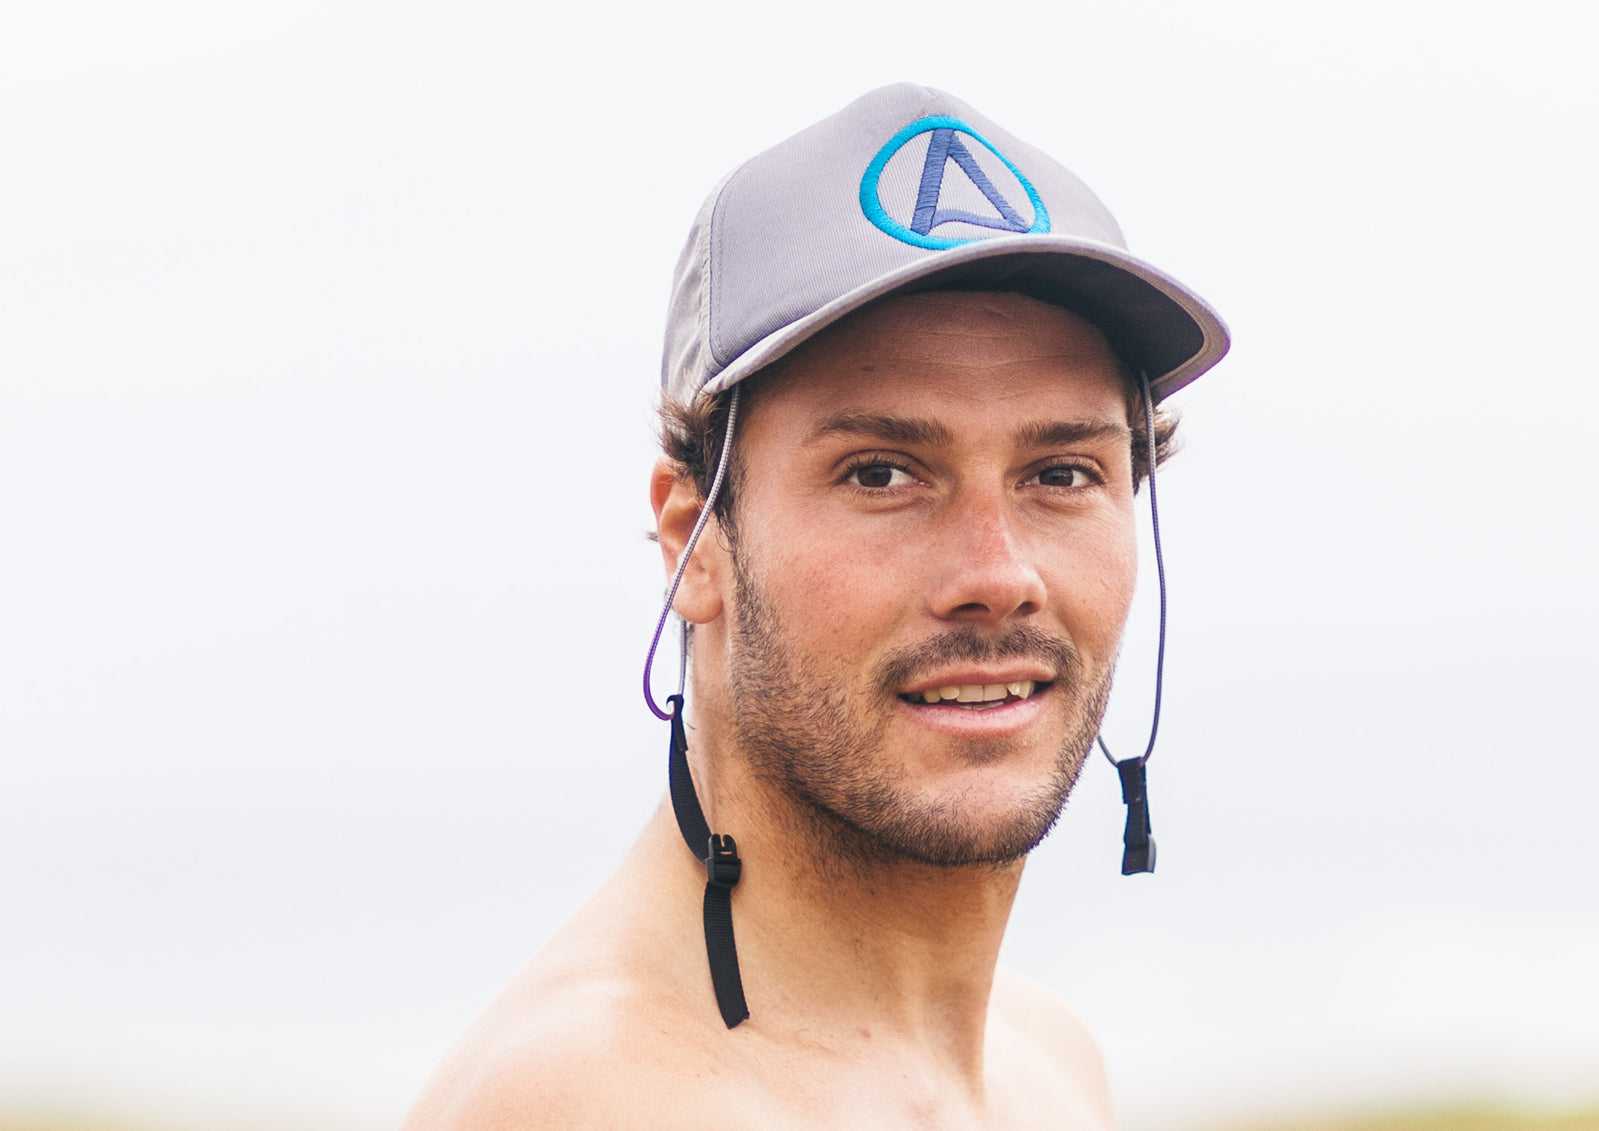 Kaiola Surf Hat Misty Grey with Blue